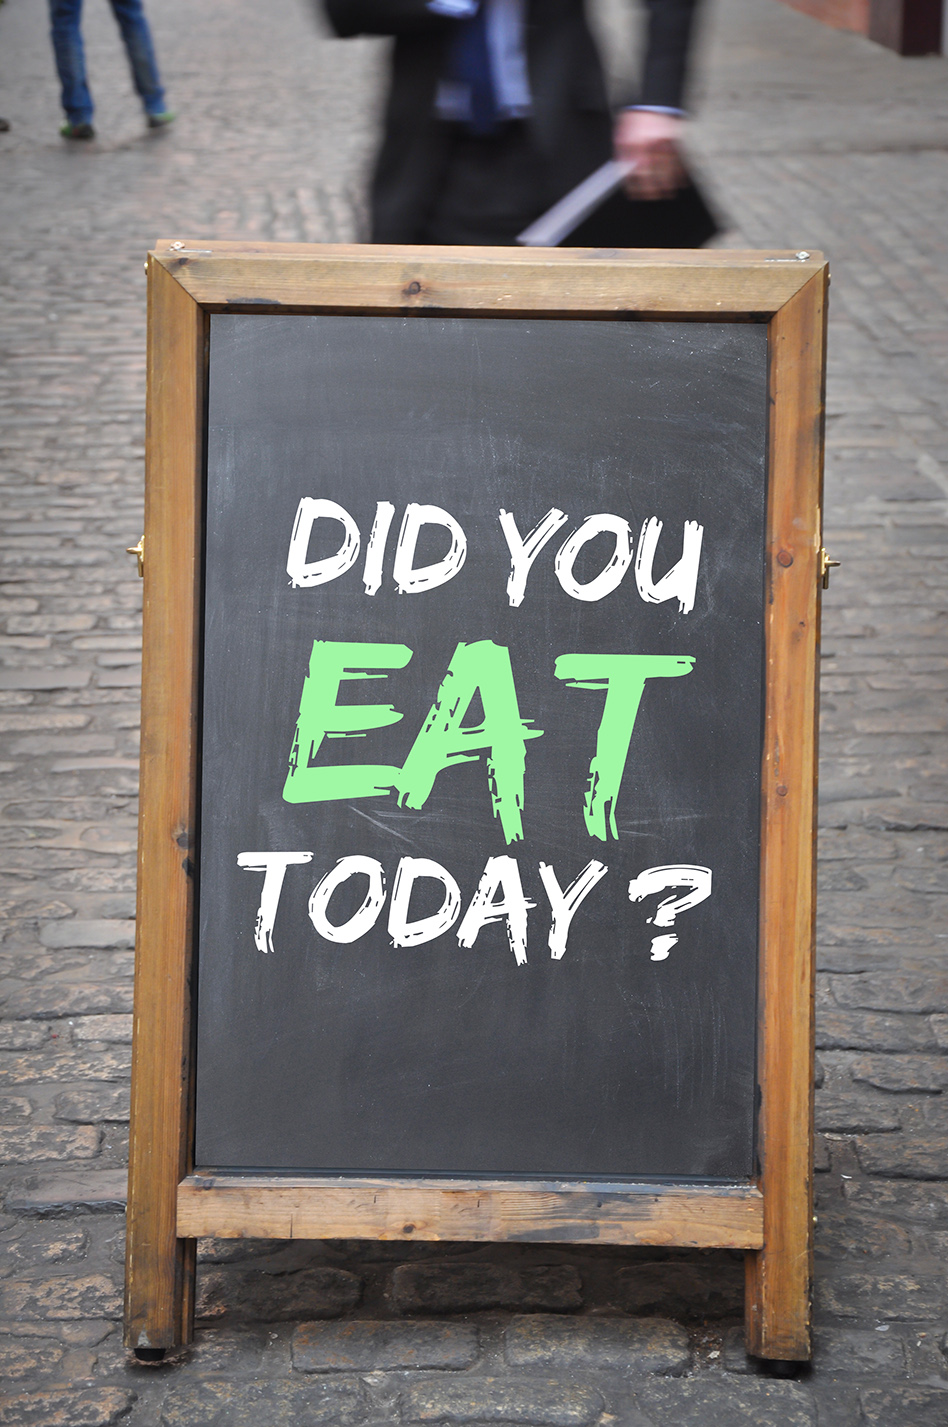 Did you eat today? - Food and the mind - HRS